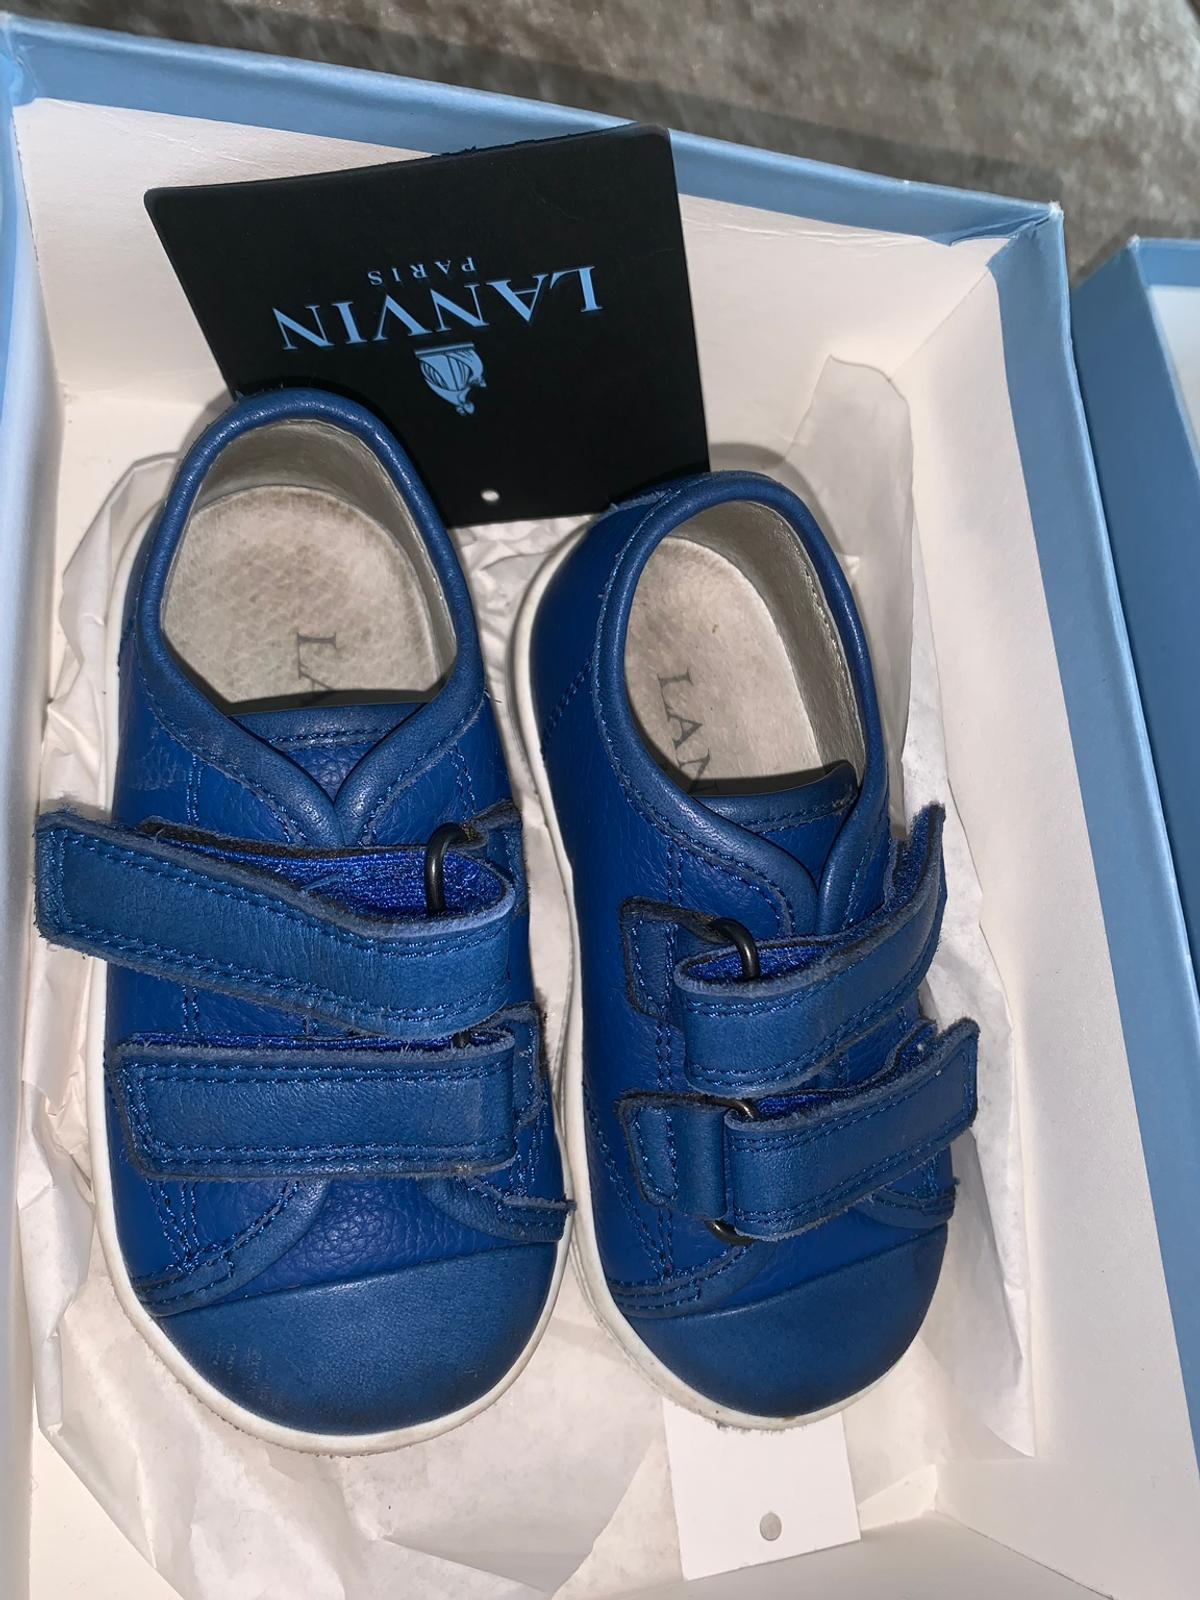 Lanvin boys shoes Size 5 (21) Great condition Can post